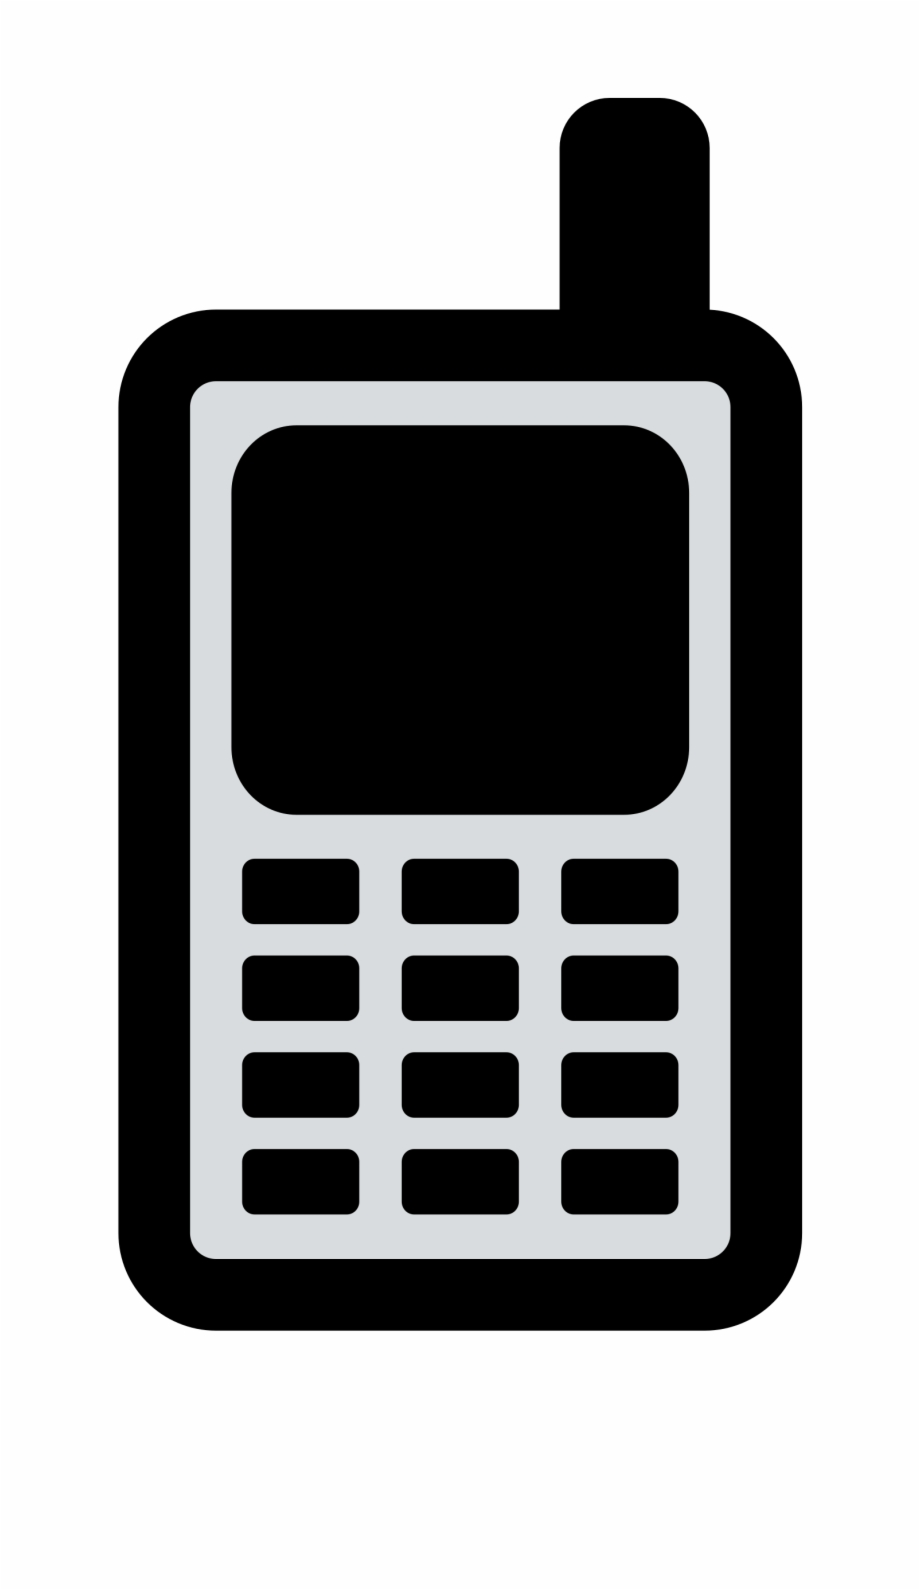 This Free Icons Png Design Of Primary Yahoo Mobile.